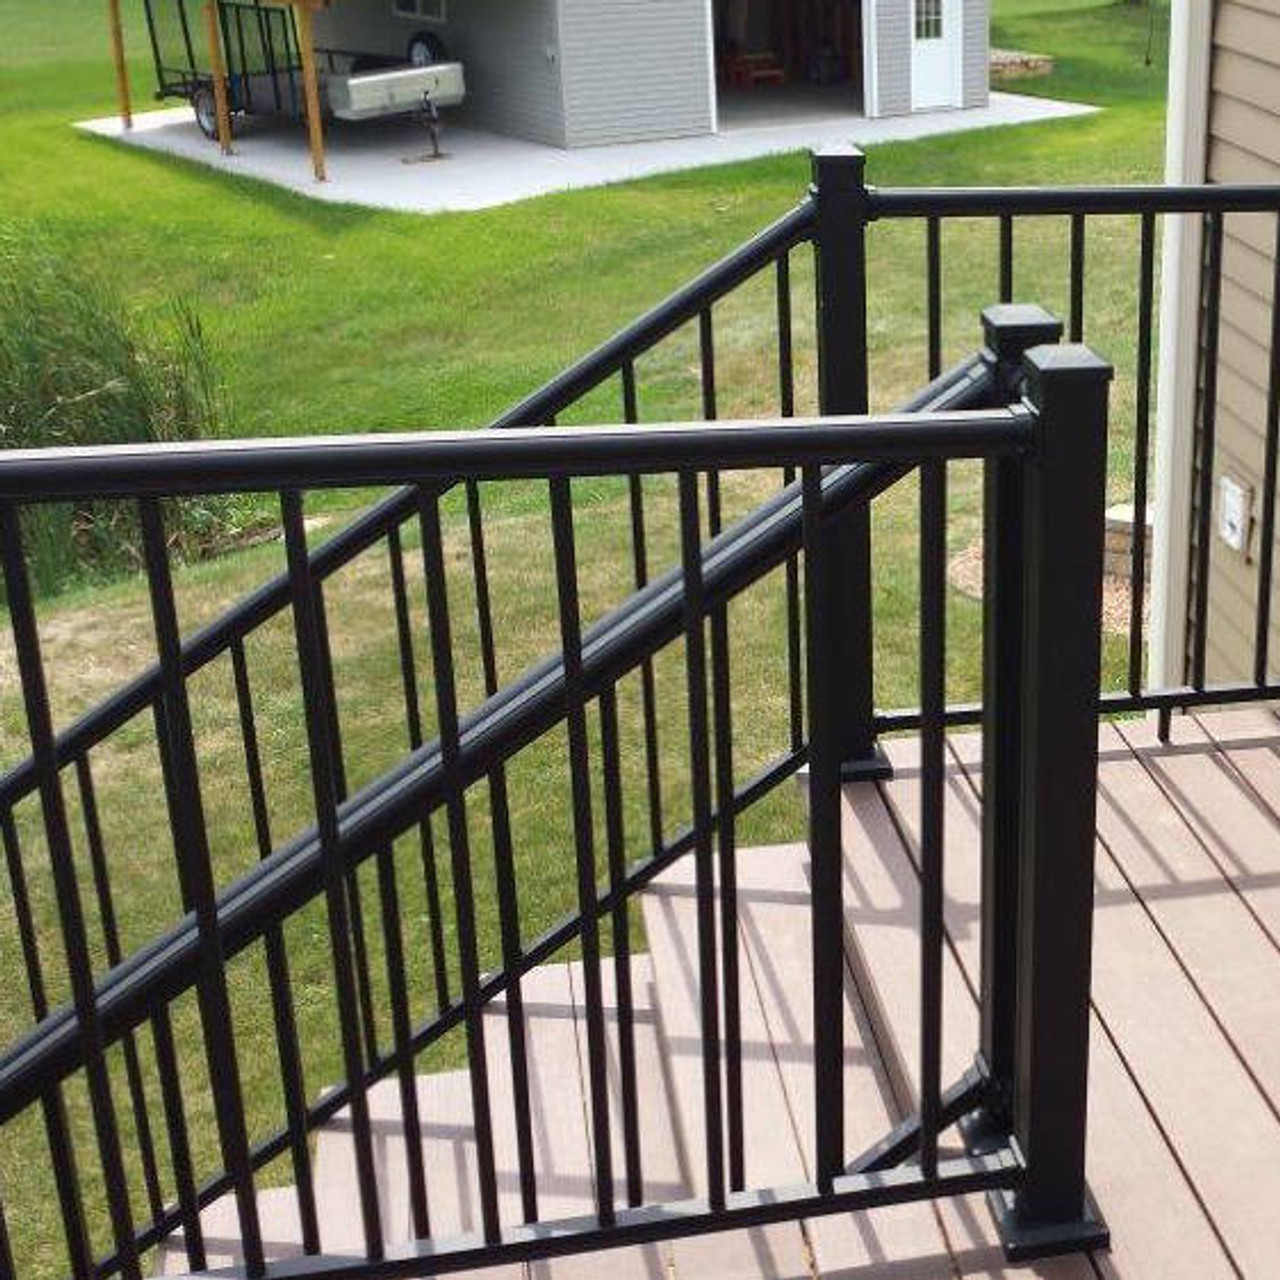 Key-Link Outlook Series Aluminum Stair Railing Sections